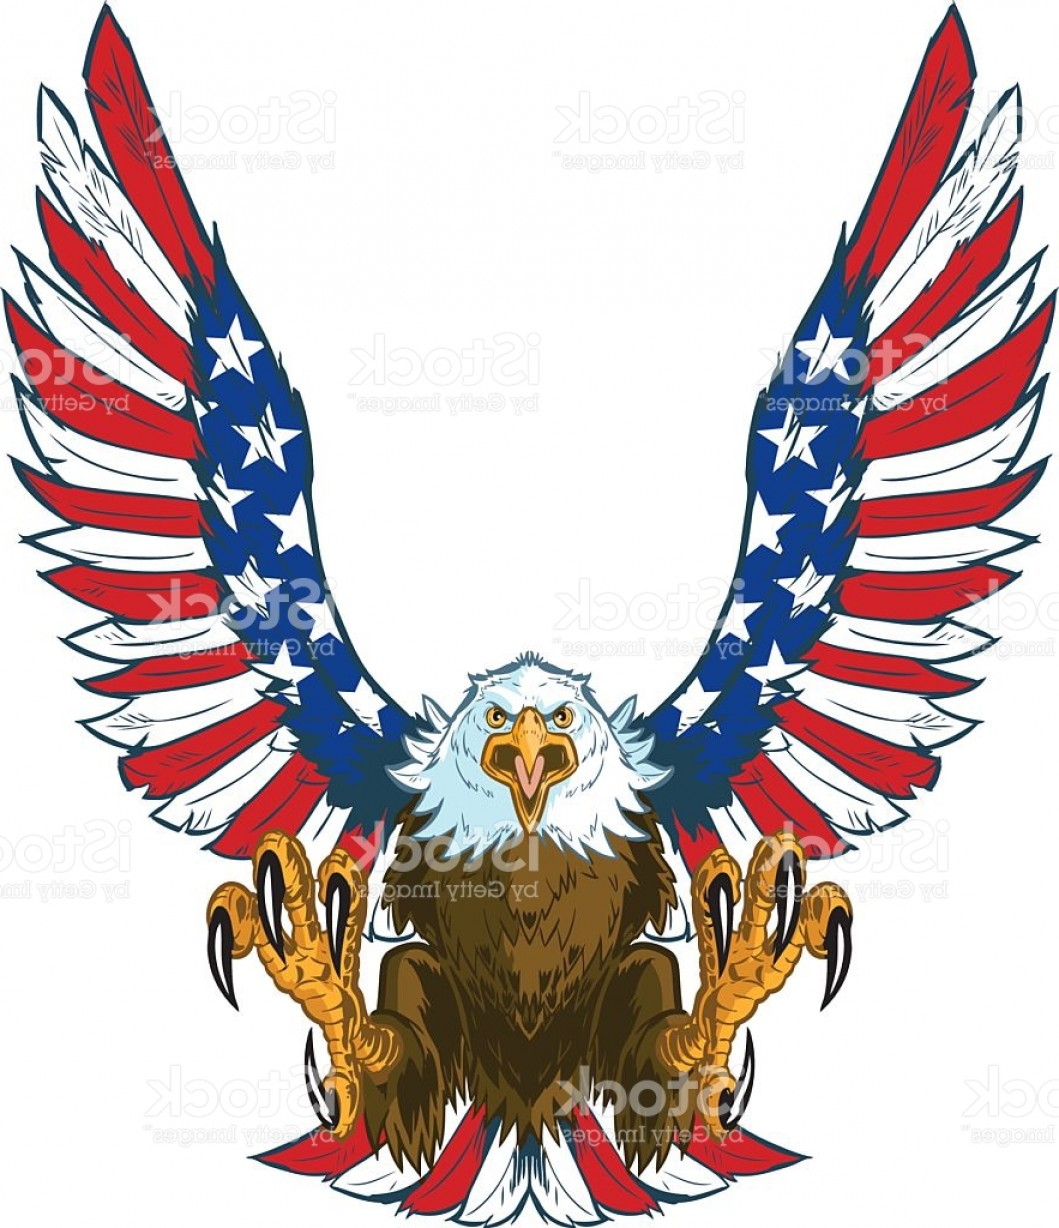 Patriotic Bald Eagle Vector: Screaming Eagle With American Flag Wings Vector Clip Art Gm